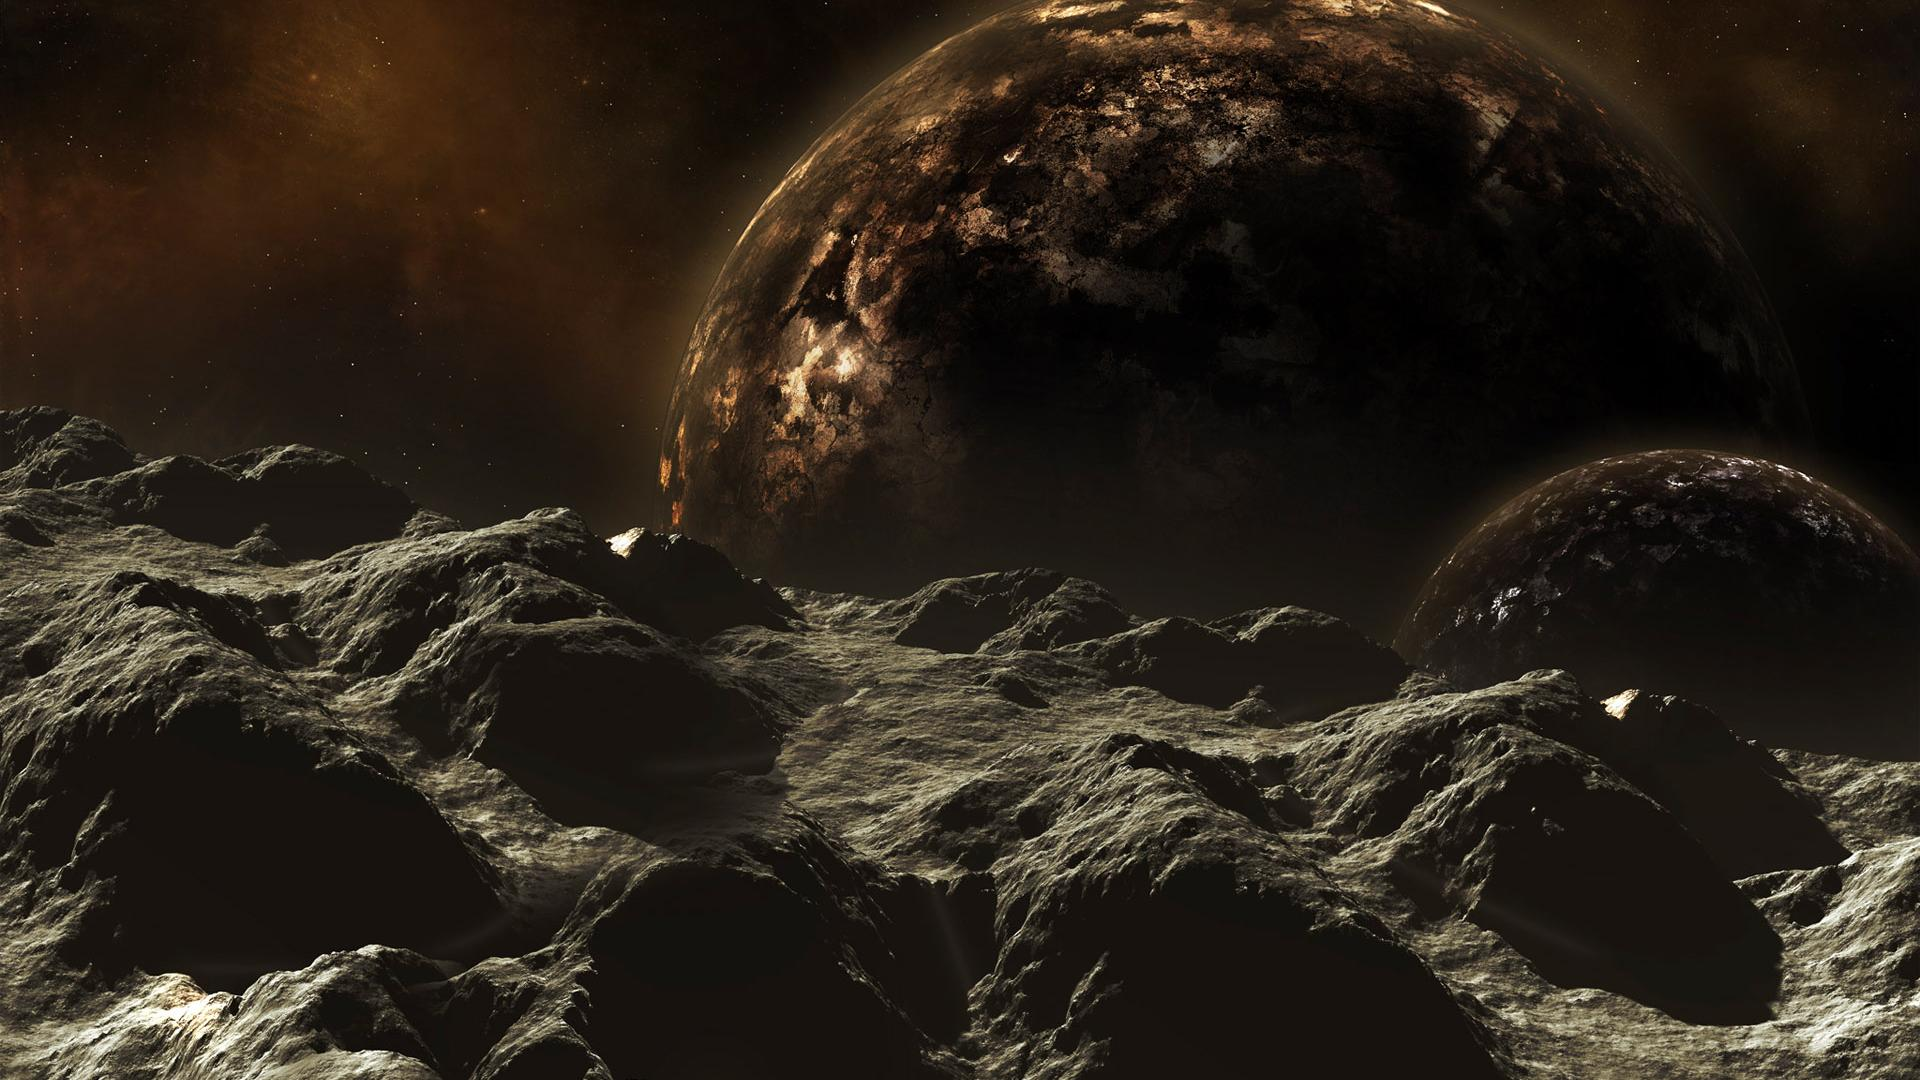 Space dark planet HD 1920x1080 1920x1080